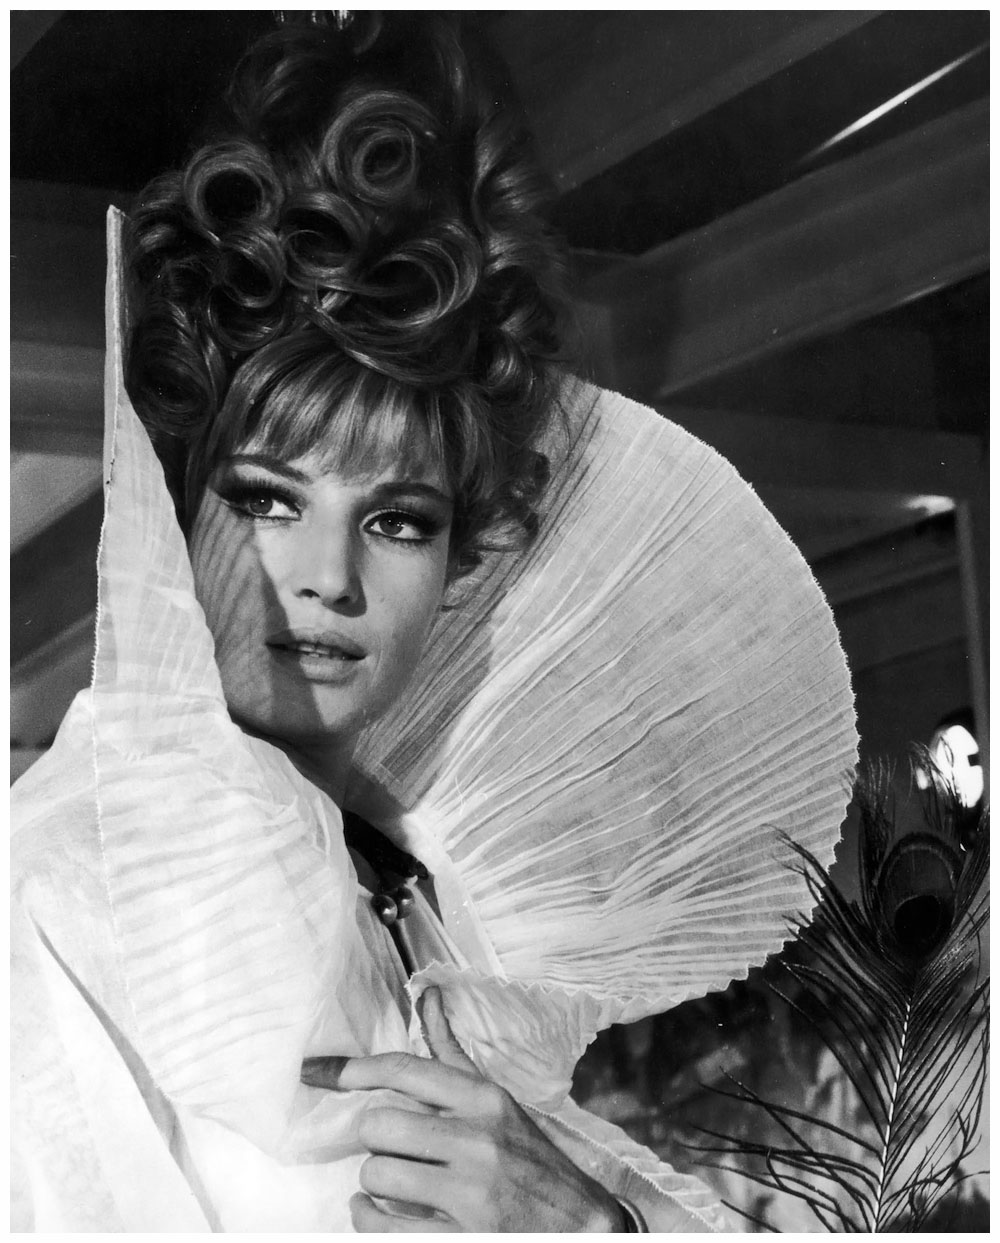 Italian actress Monica Vitti stars in the lead role of Joseph Losey's film 'Modesty Blaise', which was released in 1966. (Photo by Stephan C Archetti/Keystone/Hulton Archive/Getty Images)